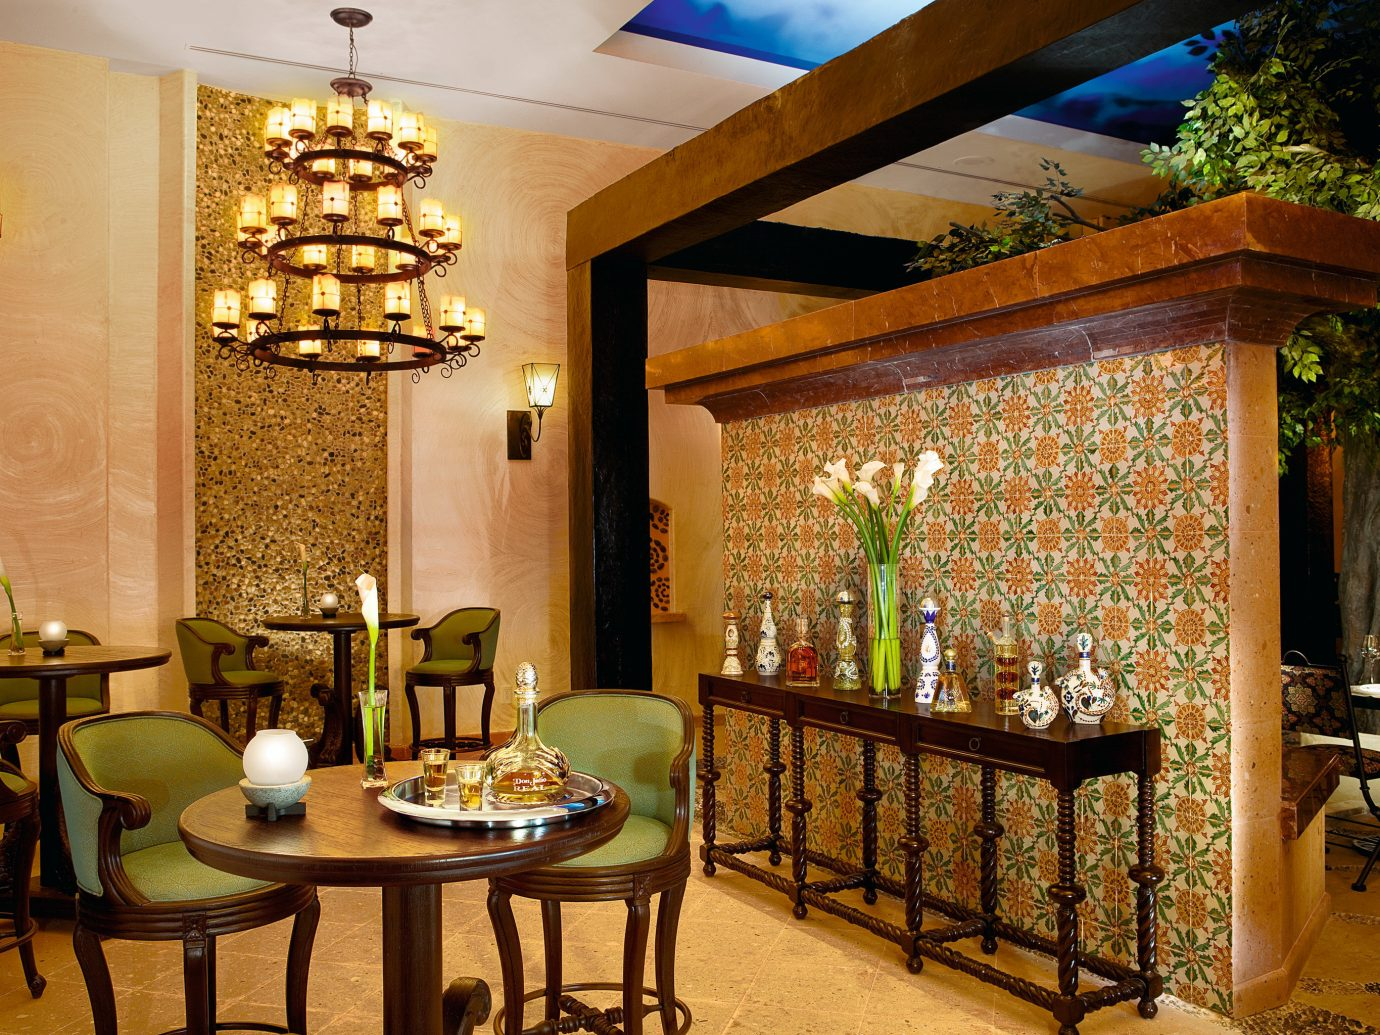 All-Inclusive Resorts Hotels Romance indoor wall floor room chair Living dining room interior design restaurant table furniture area decorated